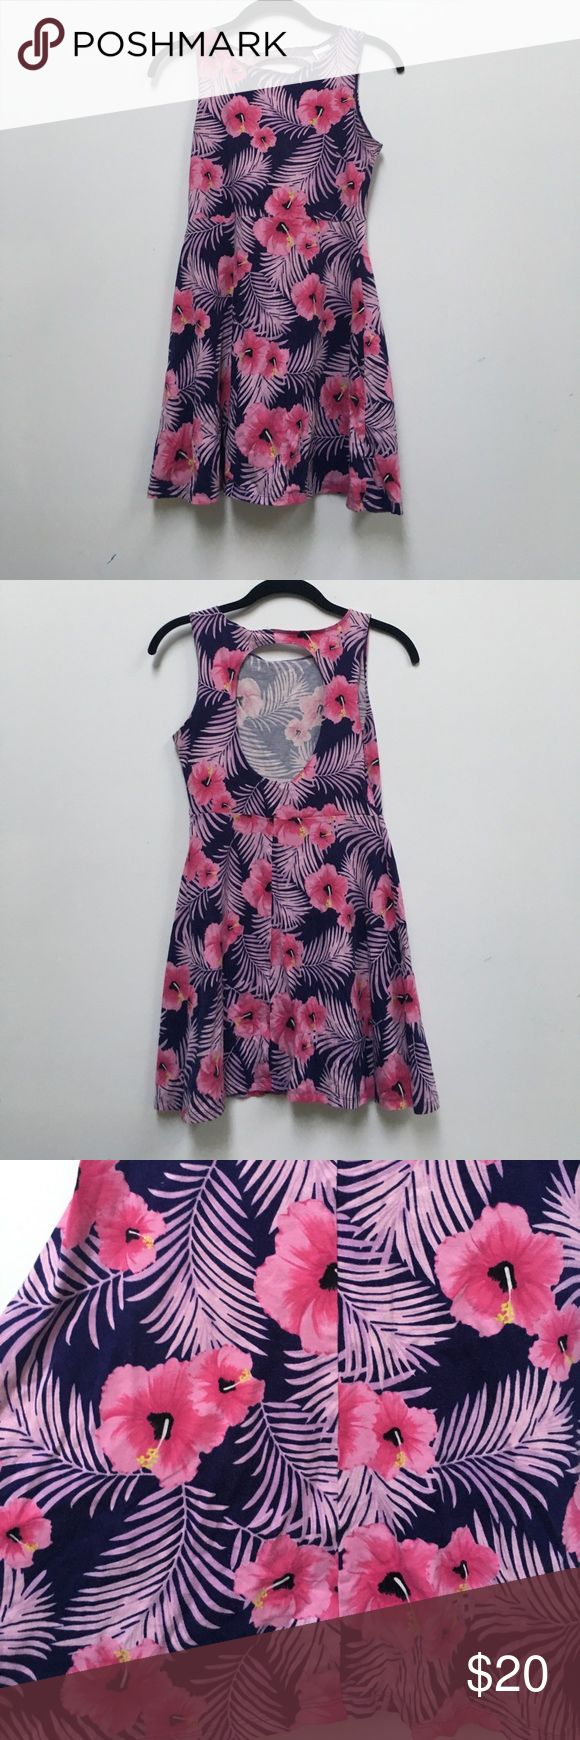 Victoria's Secret pink sundress Adorable and comfortable sundress. Purple with pink Hawaiian style flowers and leaves. Fit and flare with a open back circular cutout. Excellent condition PINK Victoria's Secret Dresses Backless